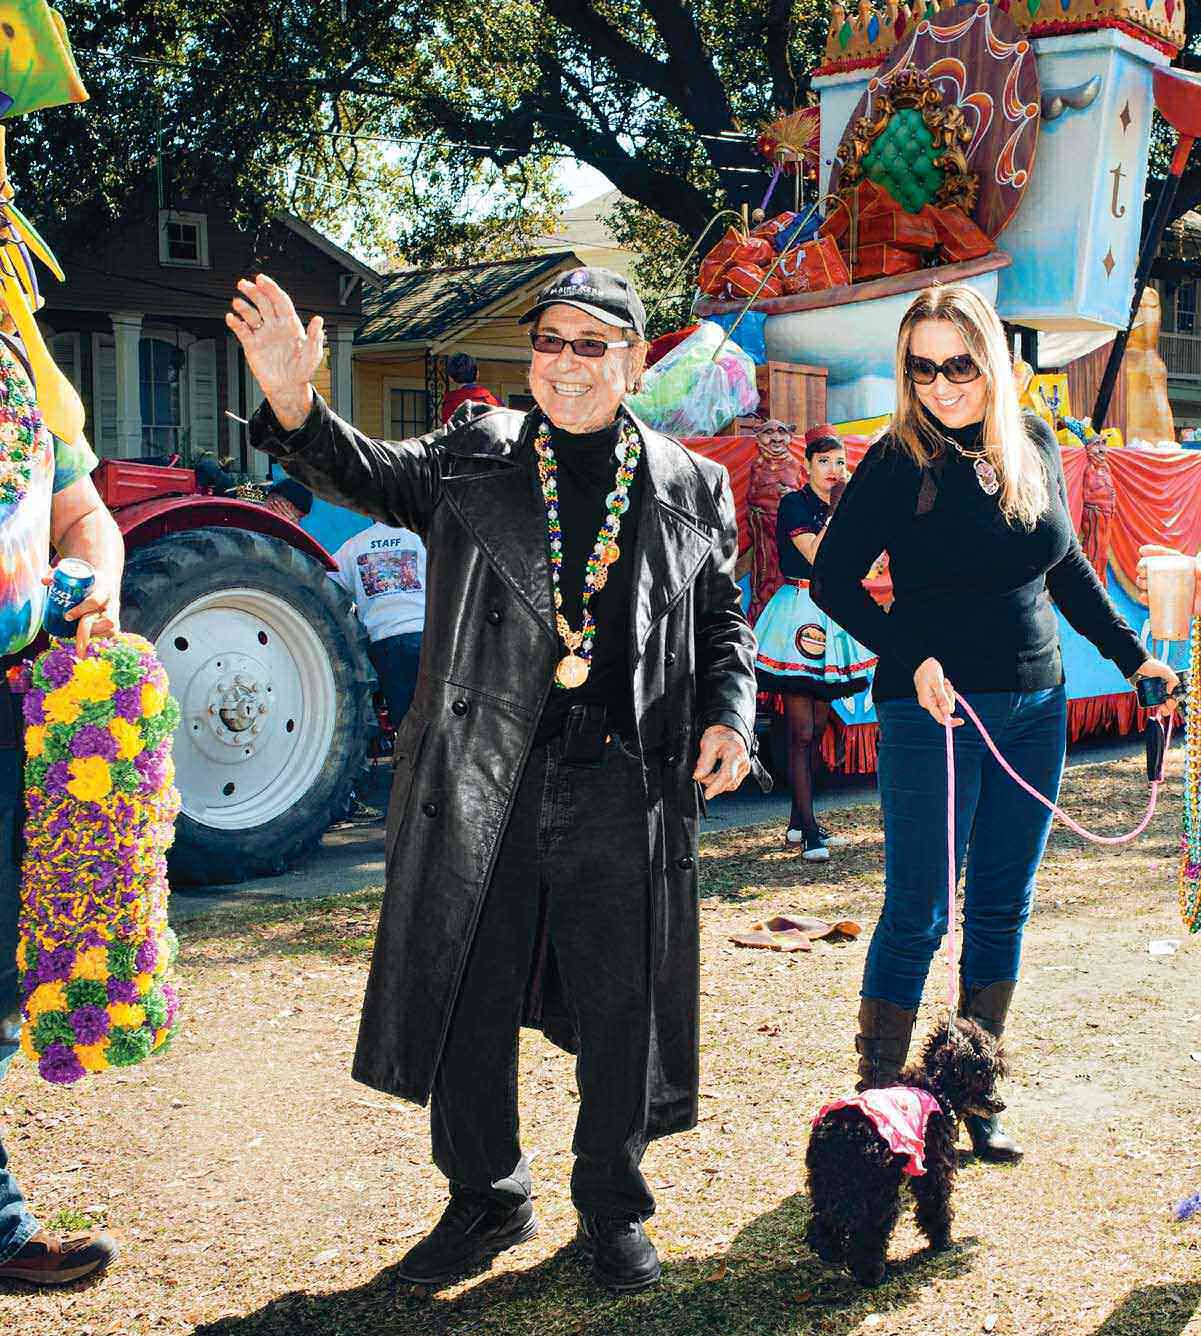 The Family Feud That Almost Killed Mardi Gras